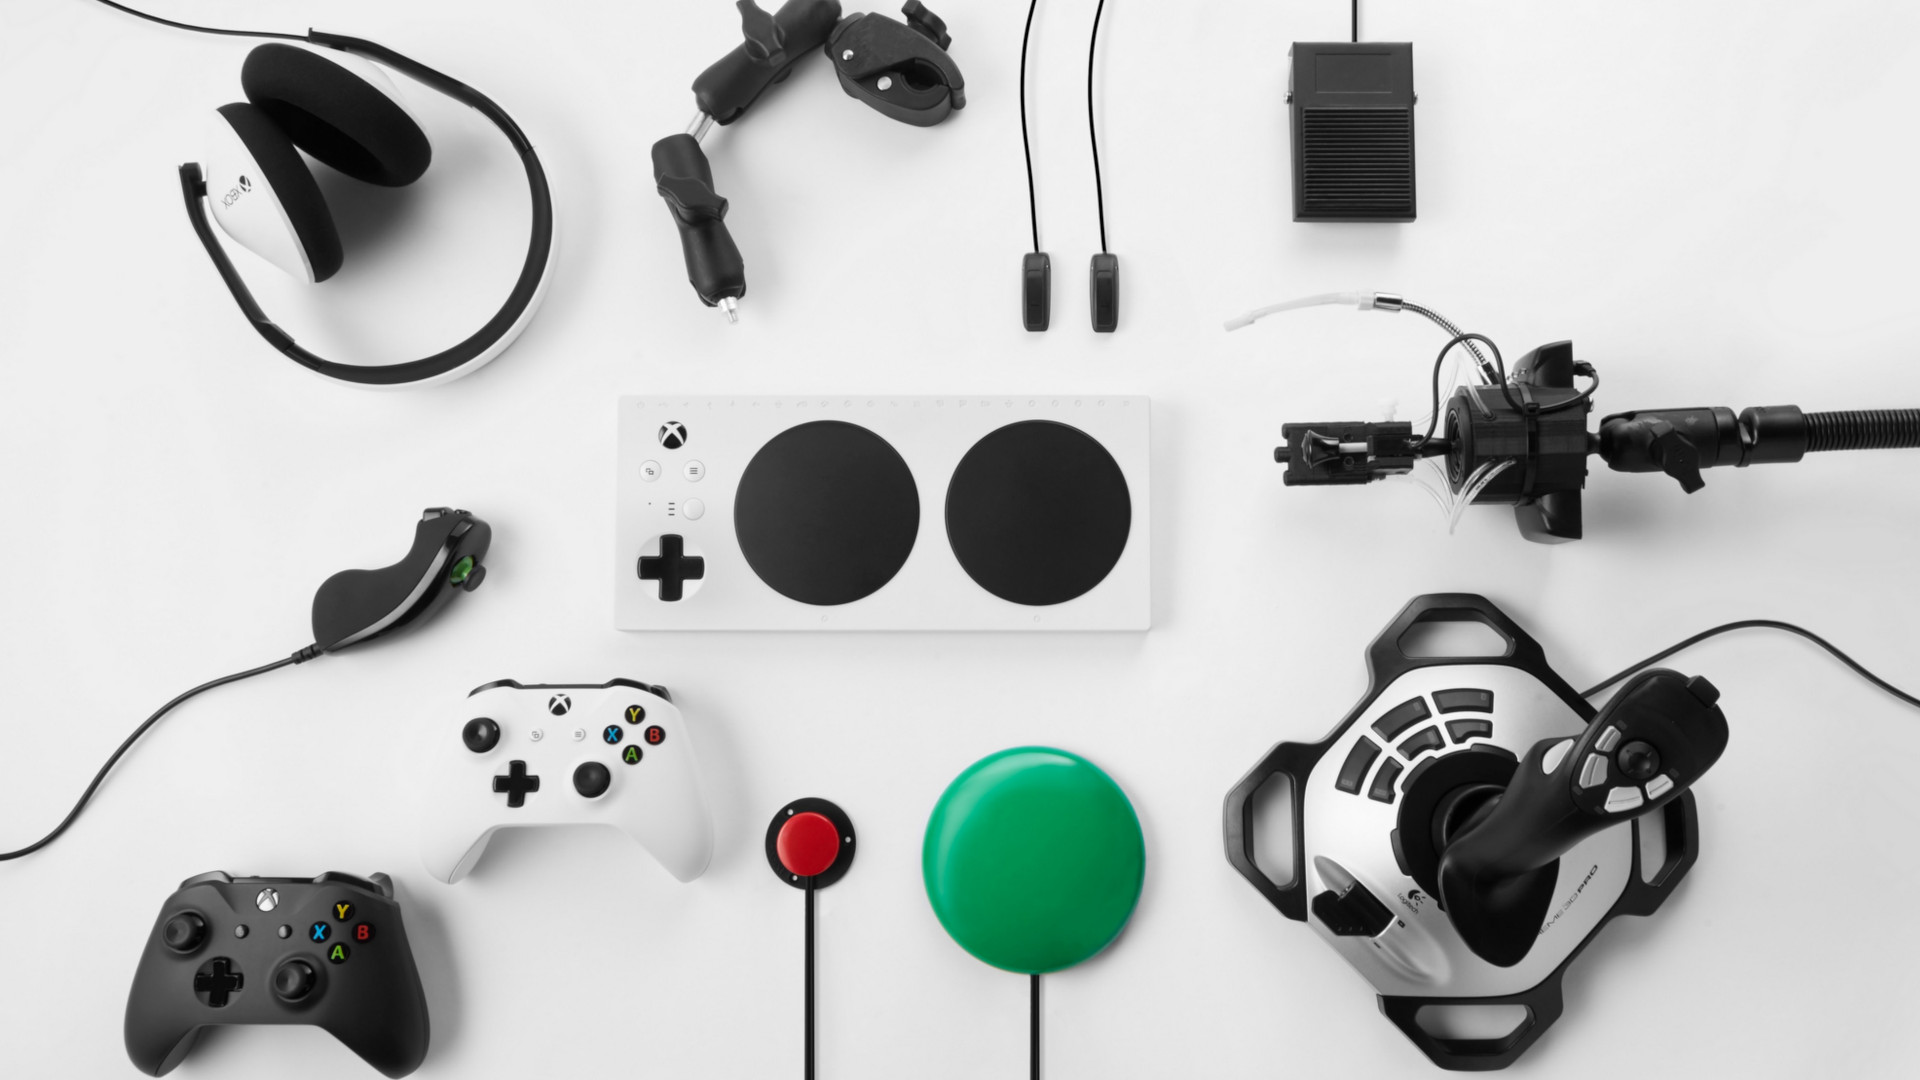 Microsoft adaptive controller surrounded by Microsoft peripherals